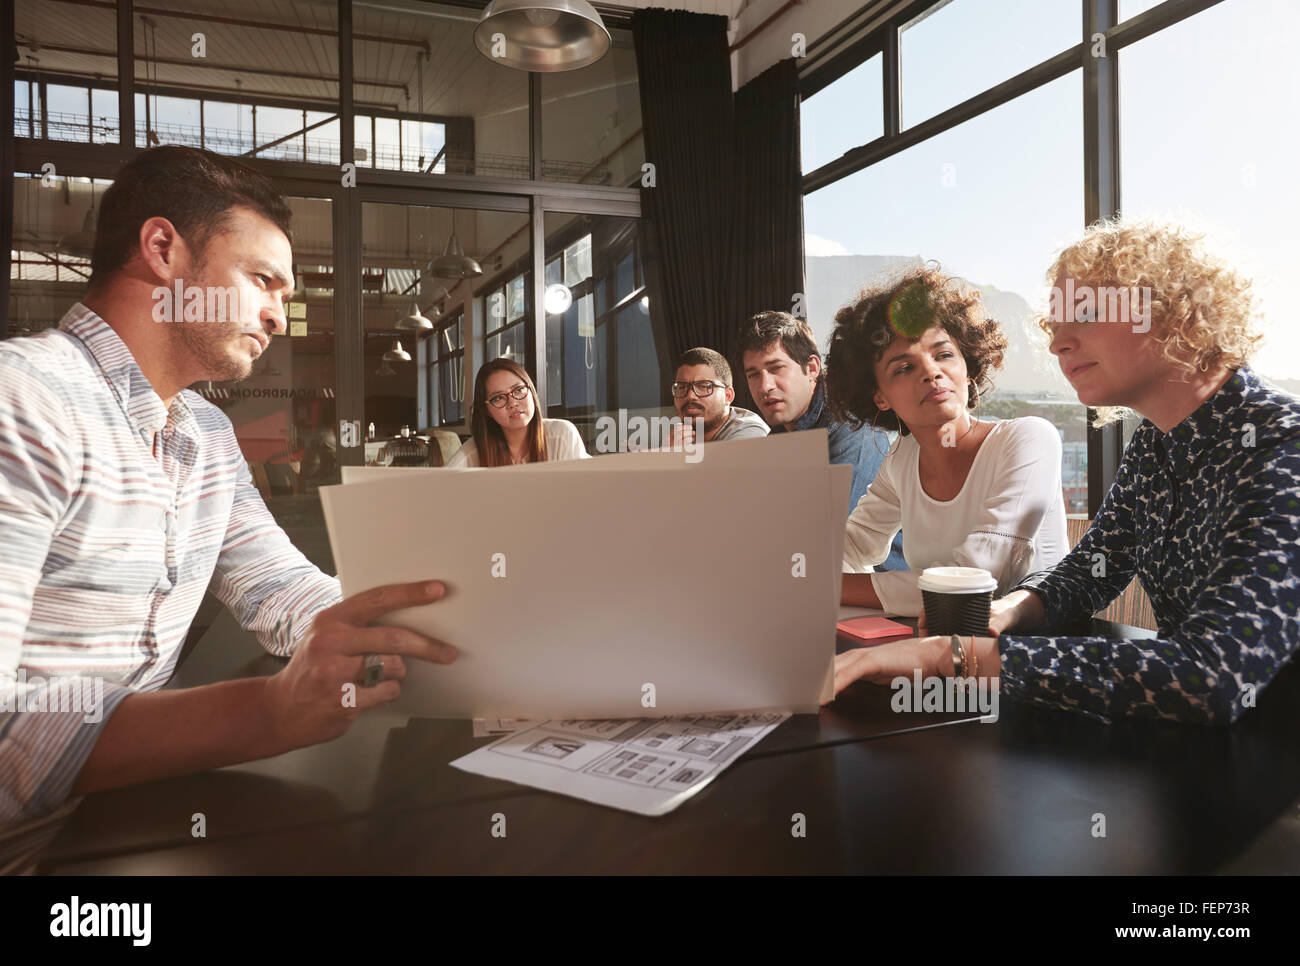 Happy and successful team of colleagues sitting together to work out business plans - Stock Image